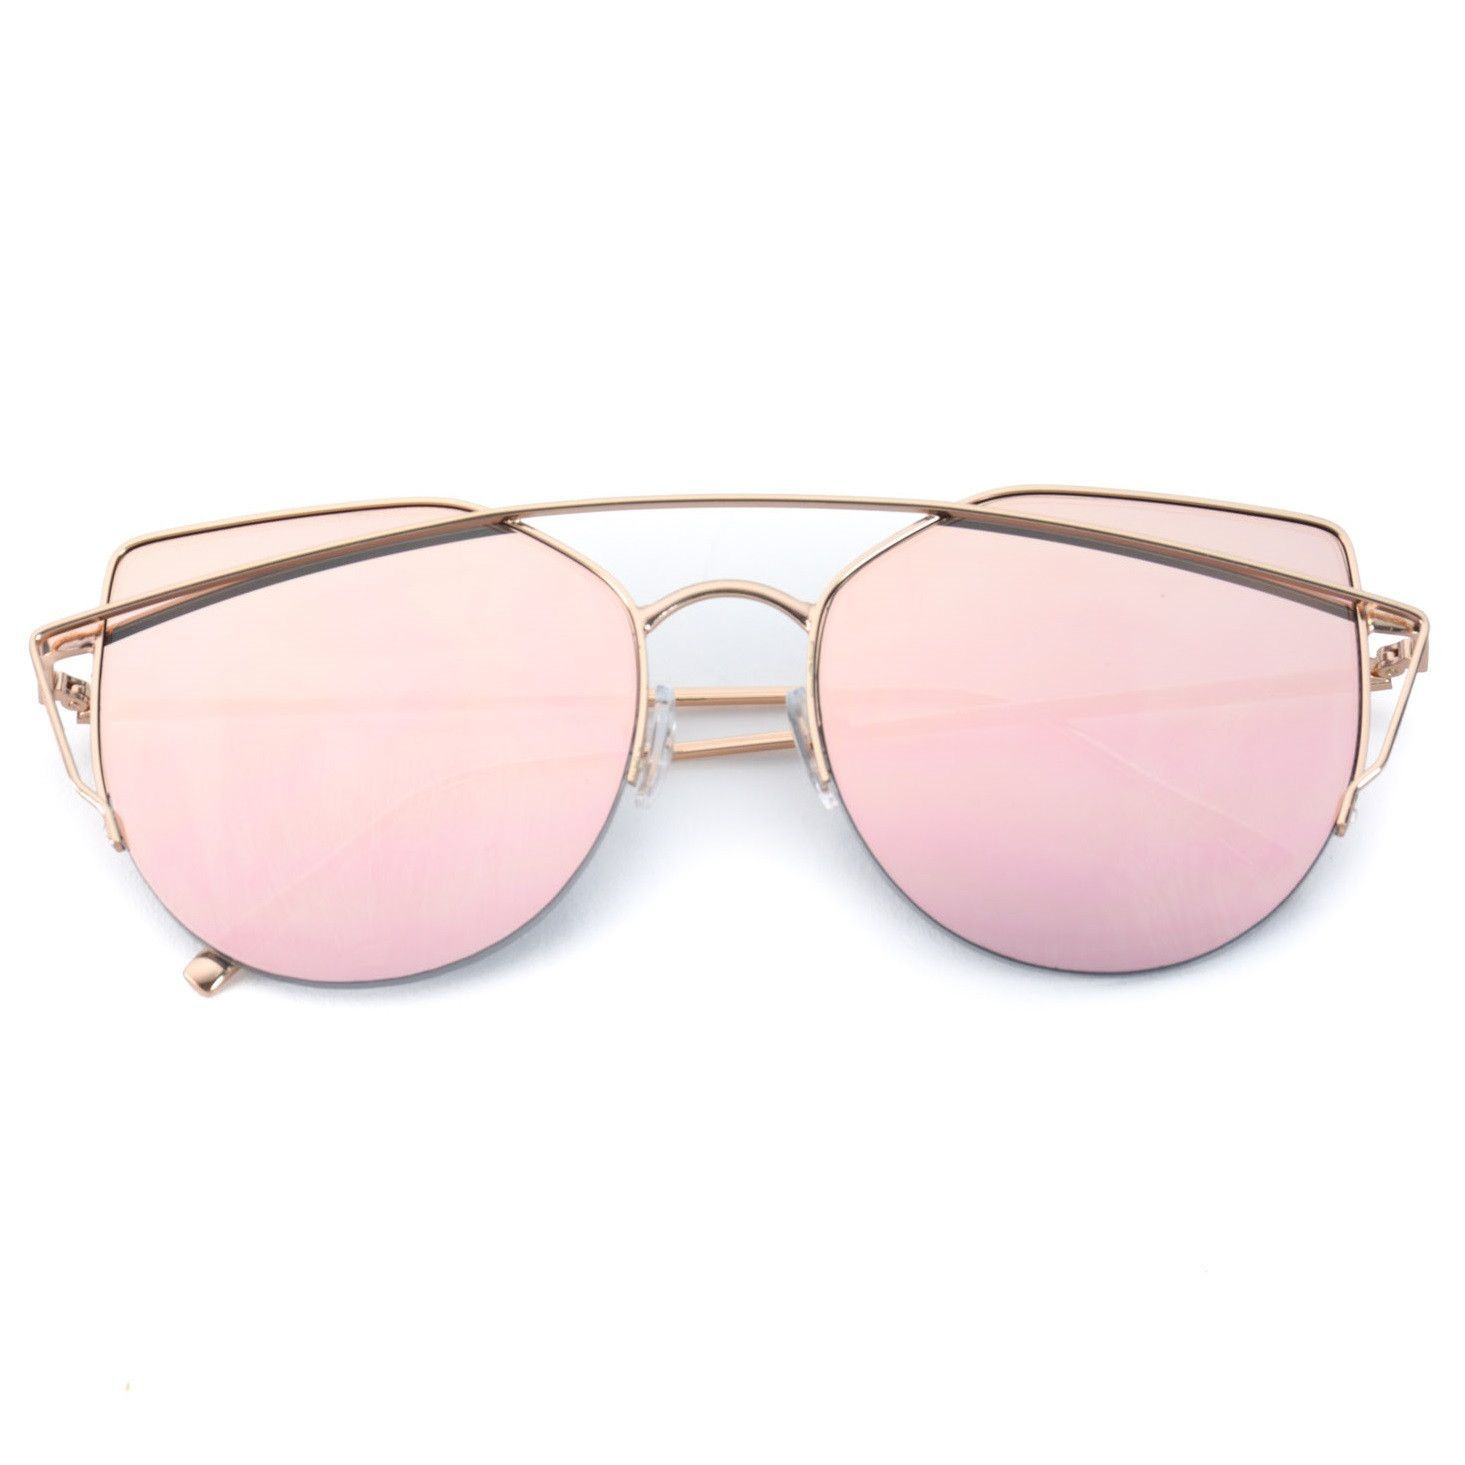 naya pink lens cute semi-rimless sunglasses for women | lenses